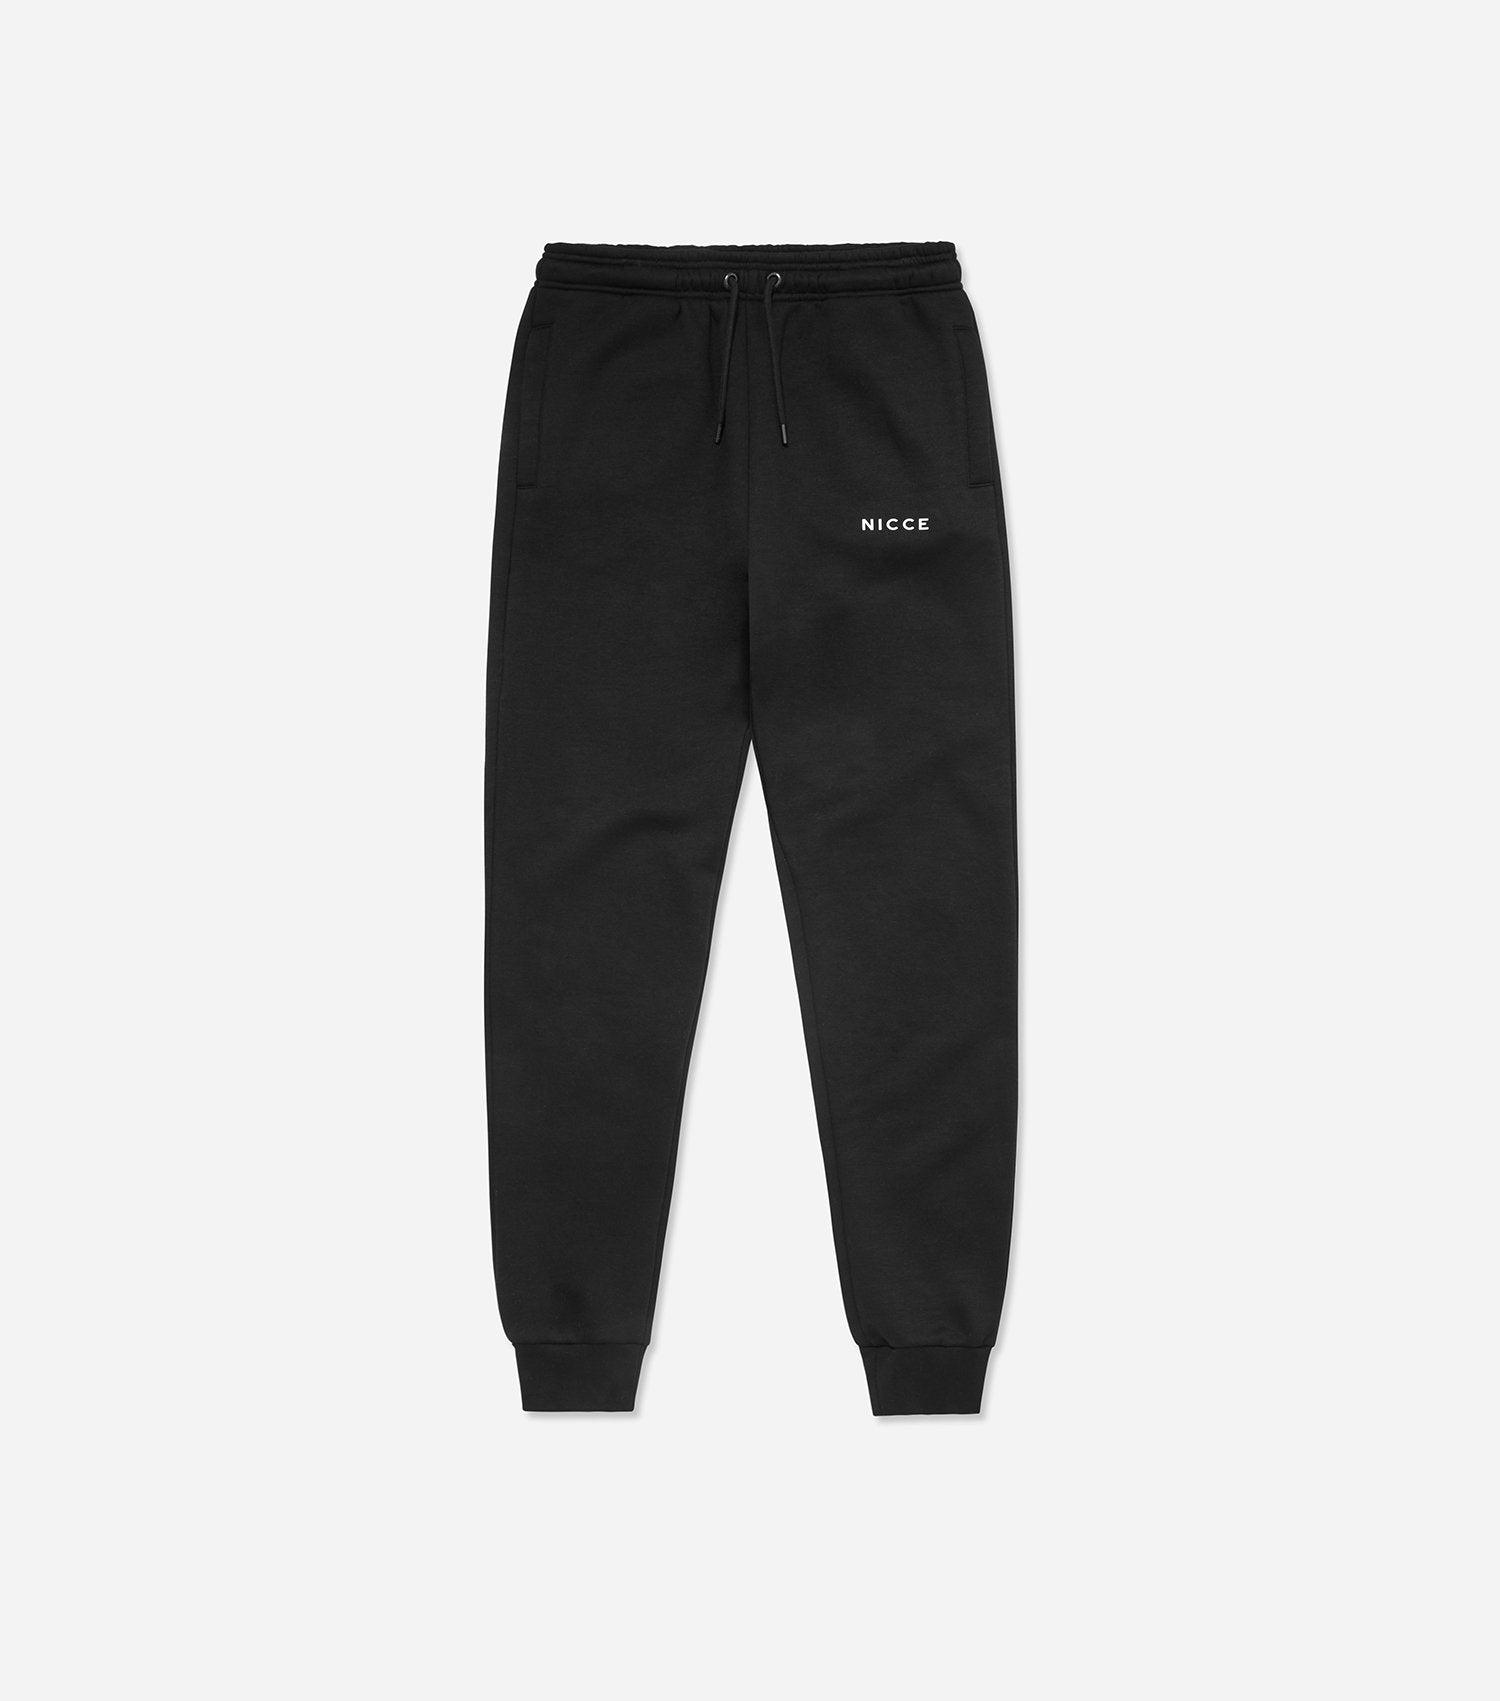 NICCE Womens Original Jogger | Black - NICCE